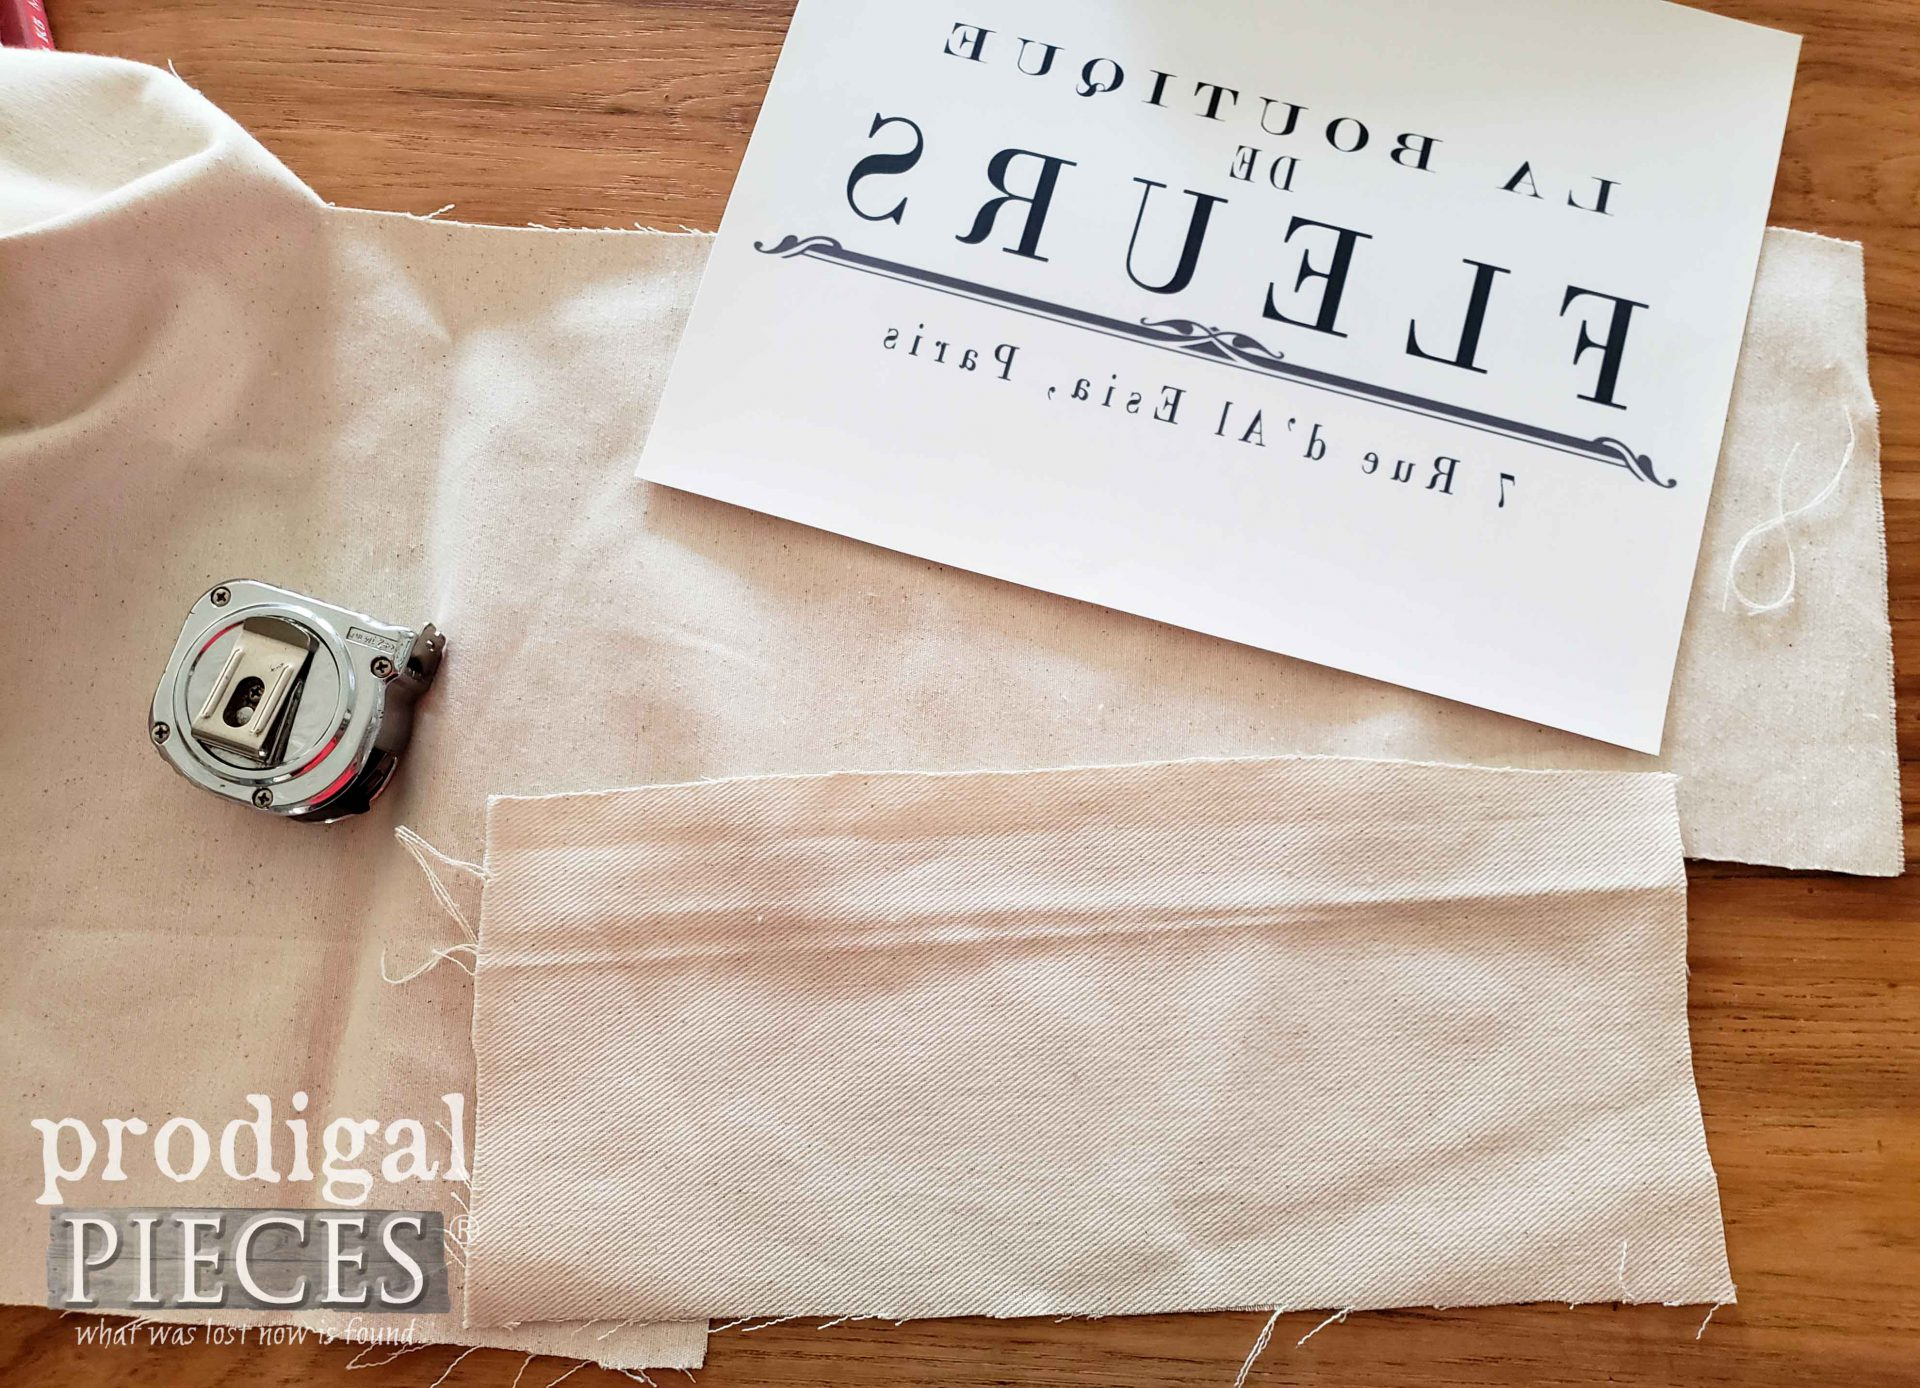 DIY French Graphic Transfer onto Fabric by Prodigal Pieces | prodigalpieces.com #prodigalpieces